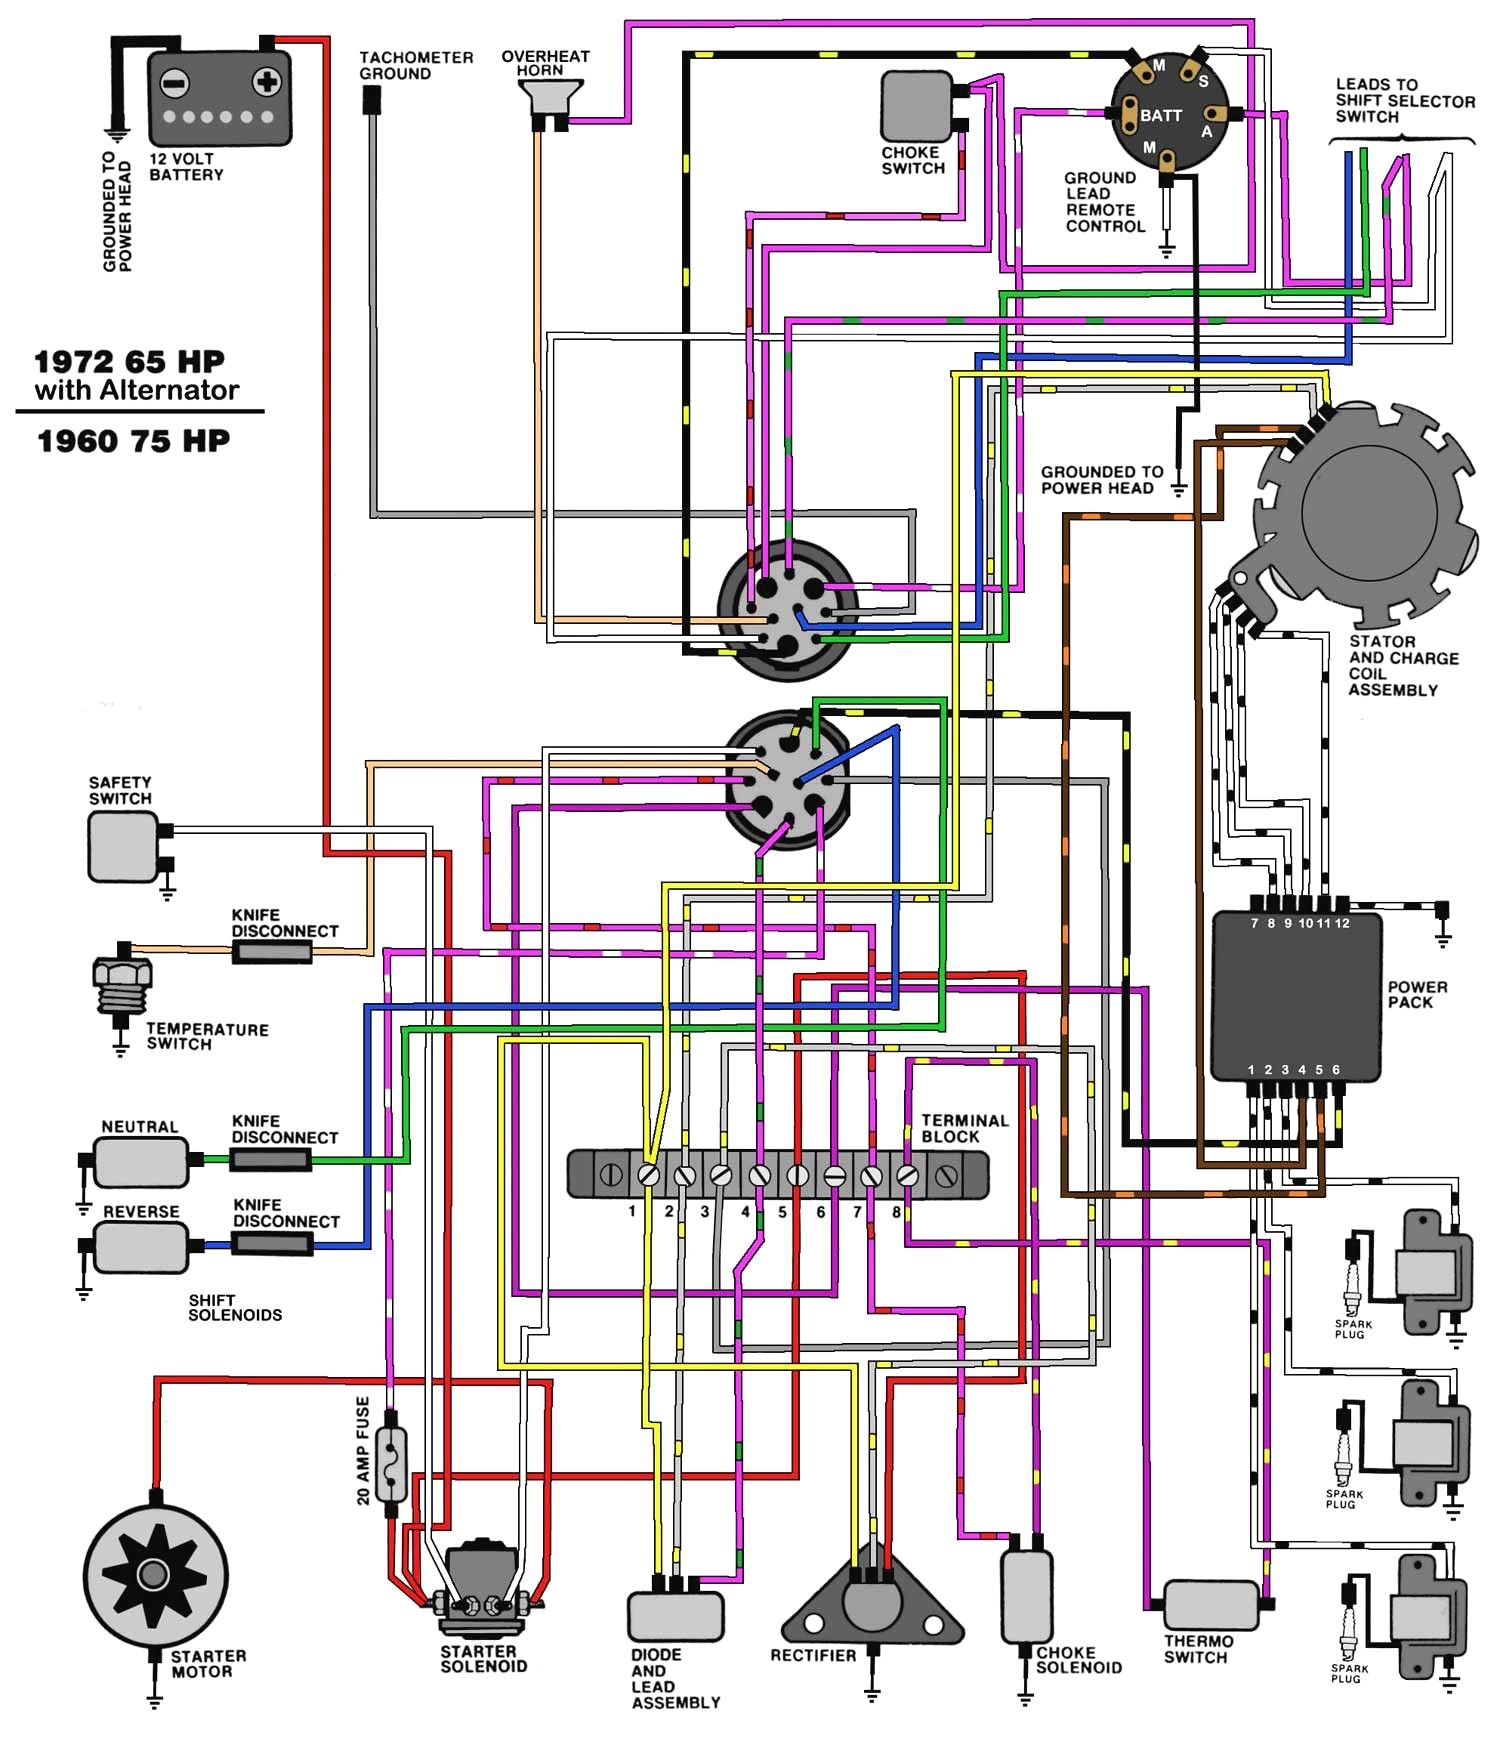 65 Hp Mercury Outboard Motor Wiring Diagram Diagrams ... V Mercury Outboard Wiring Diagram Pin on